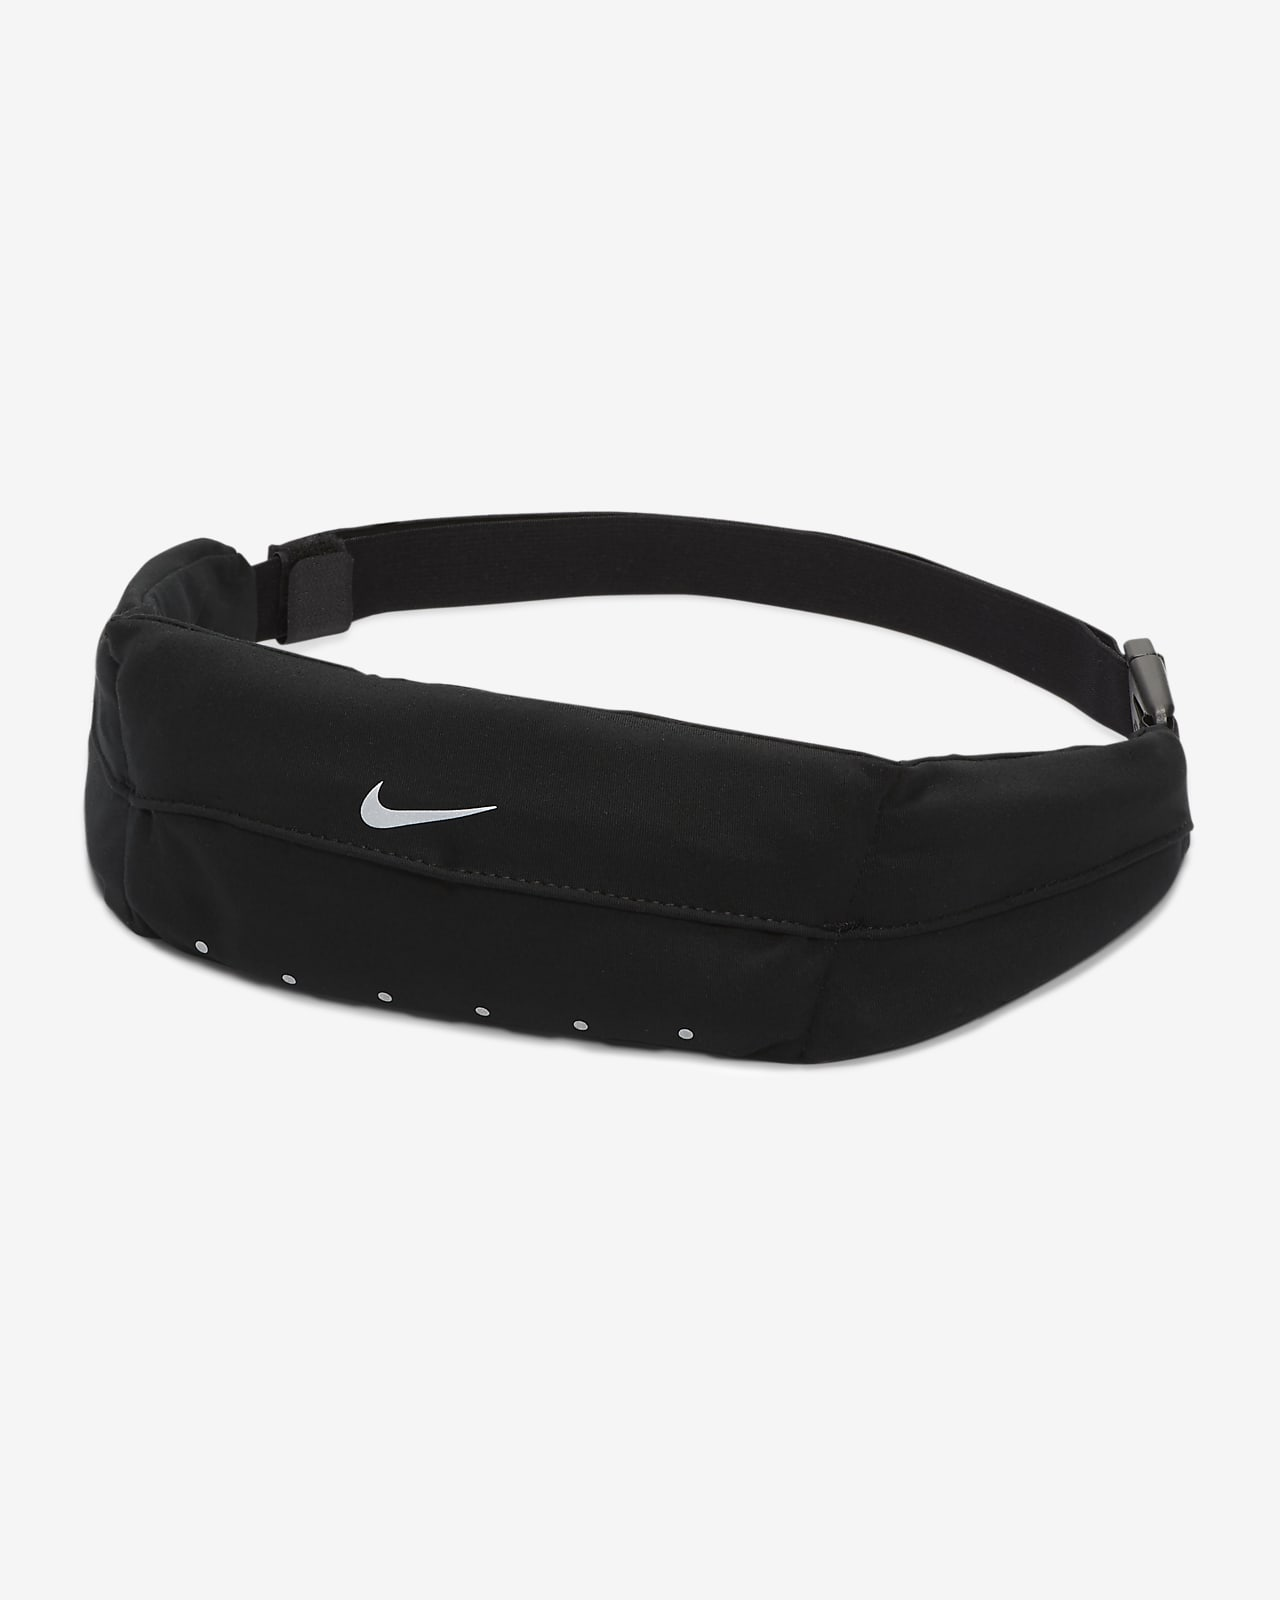 Nike Expandable Hip Pack